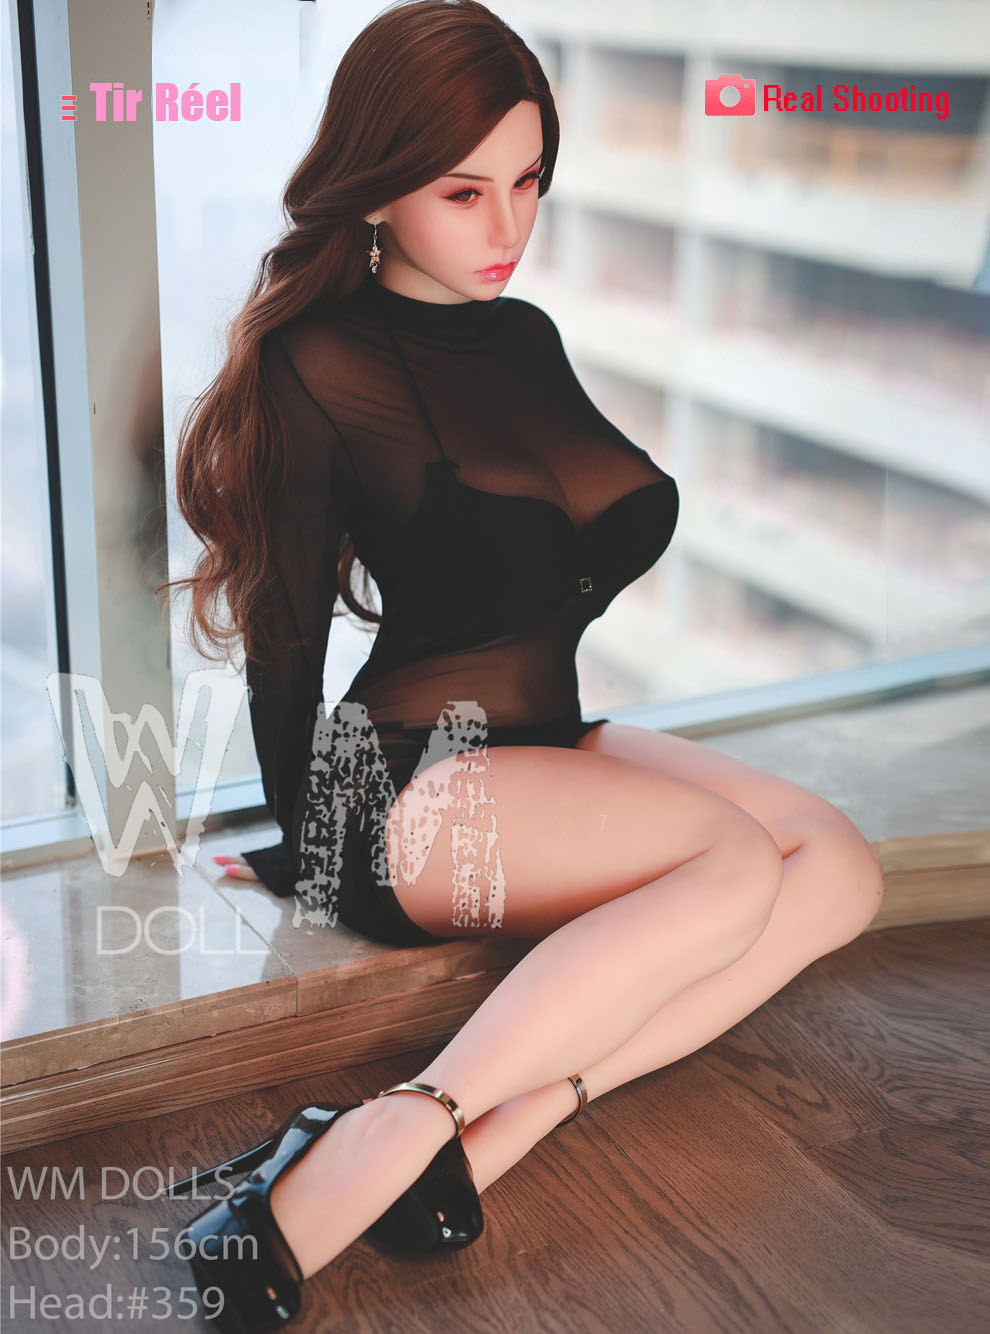 156cm(5.12ft) Realistic Japanese Sex Doll Made According To The Real Japanese Blue Movie Actress That Has Pink Nipples Fair Skin Which Is Really Sultry